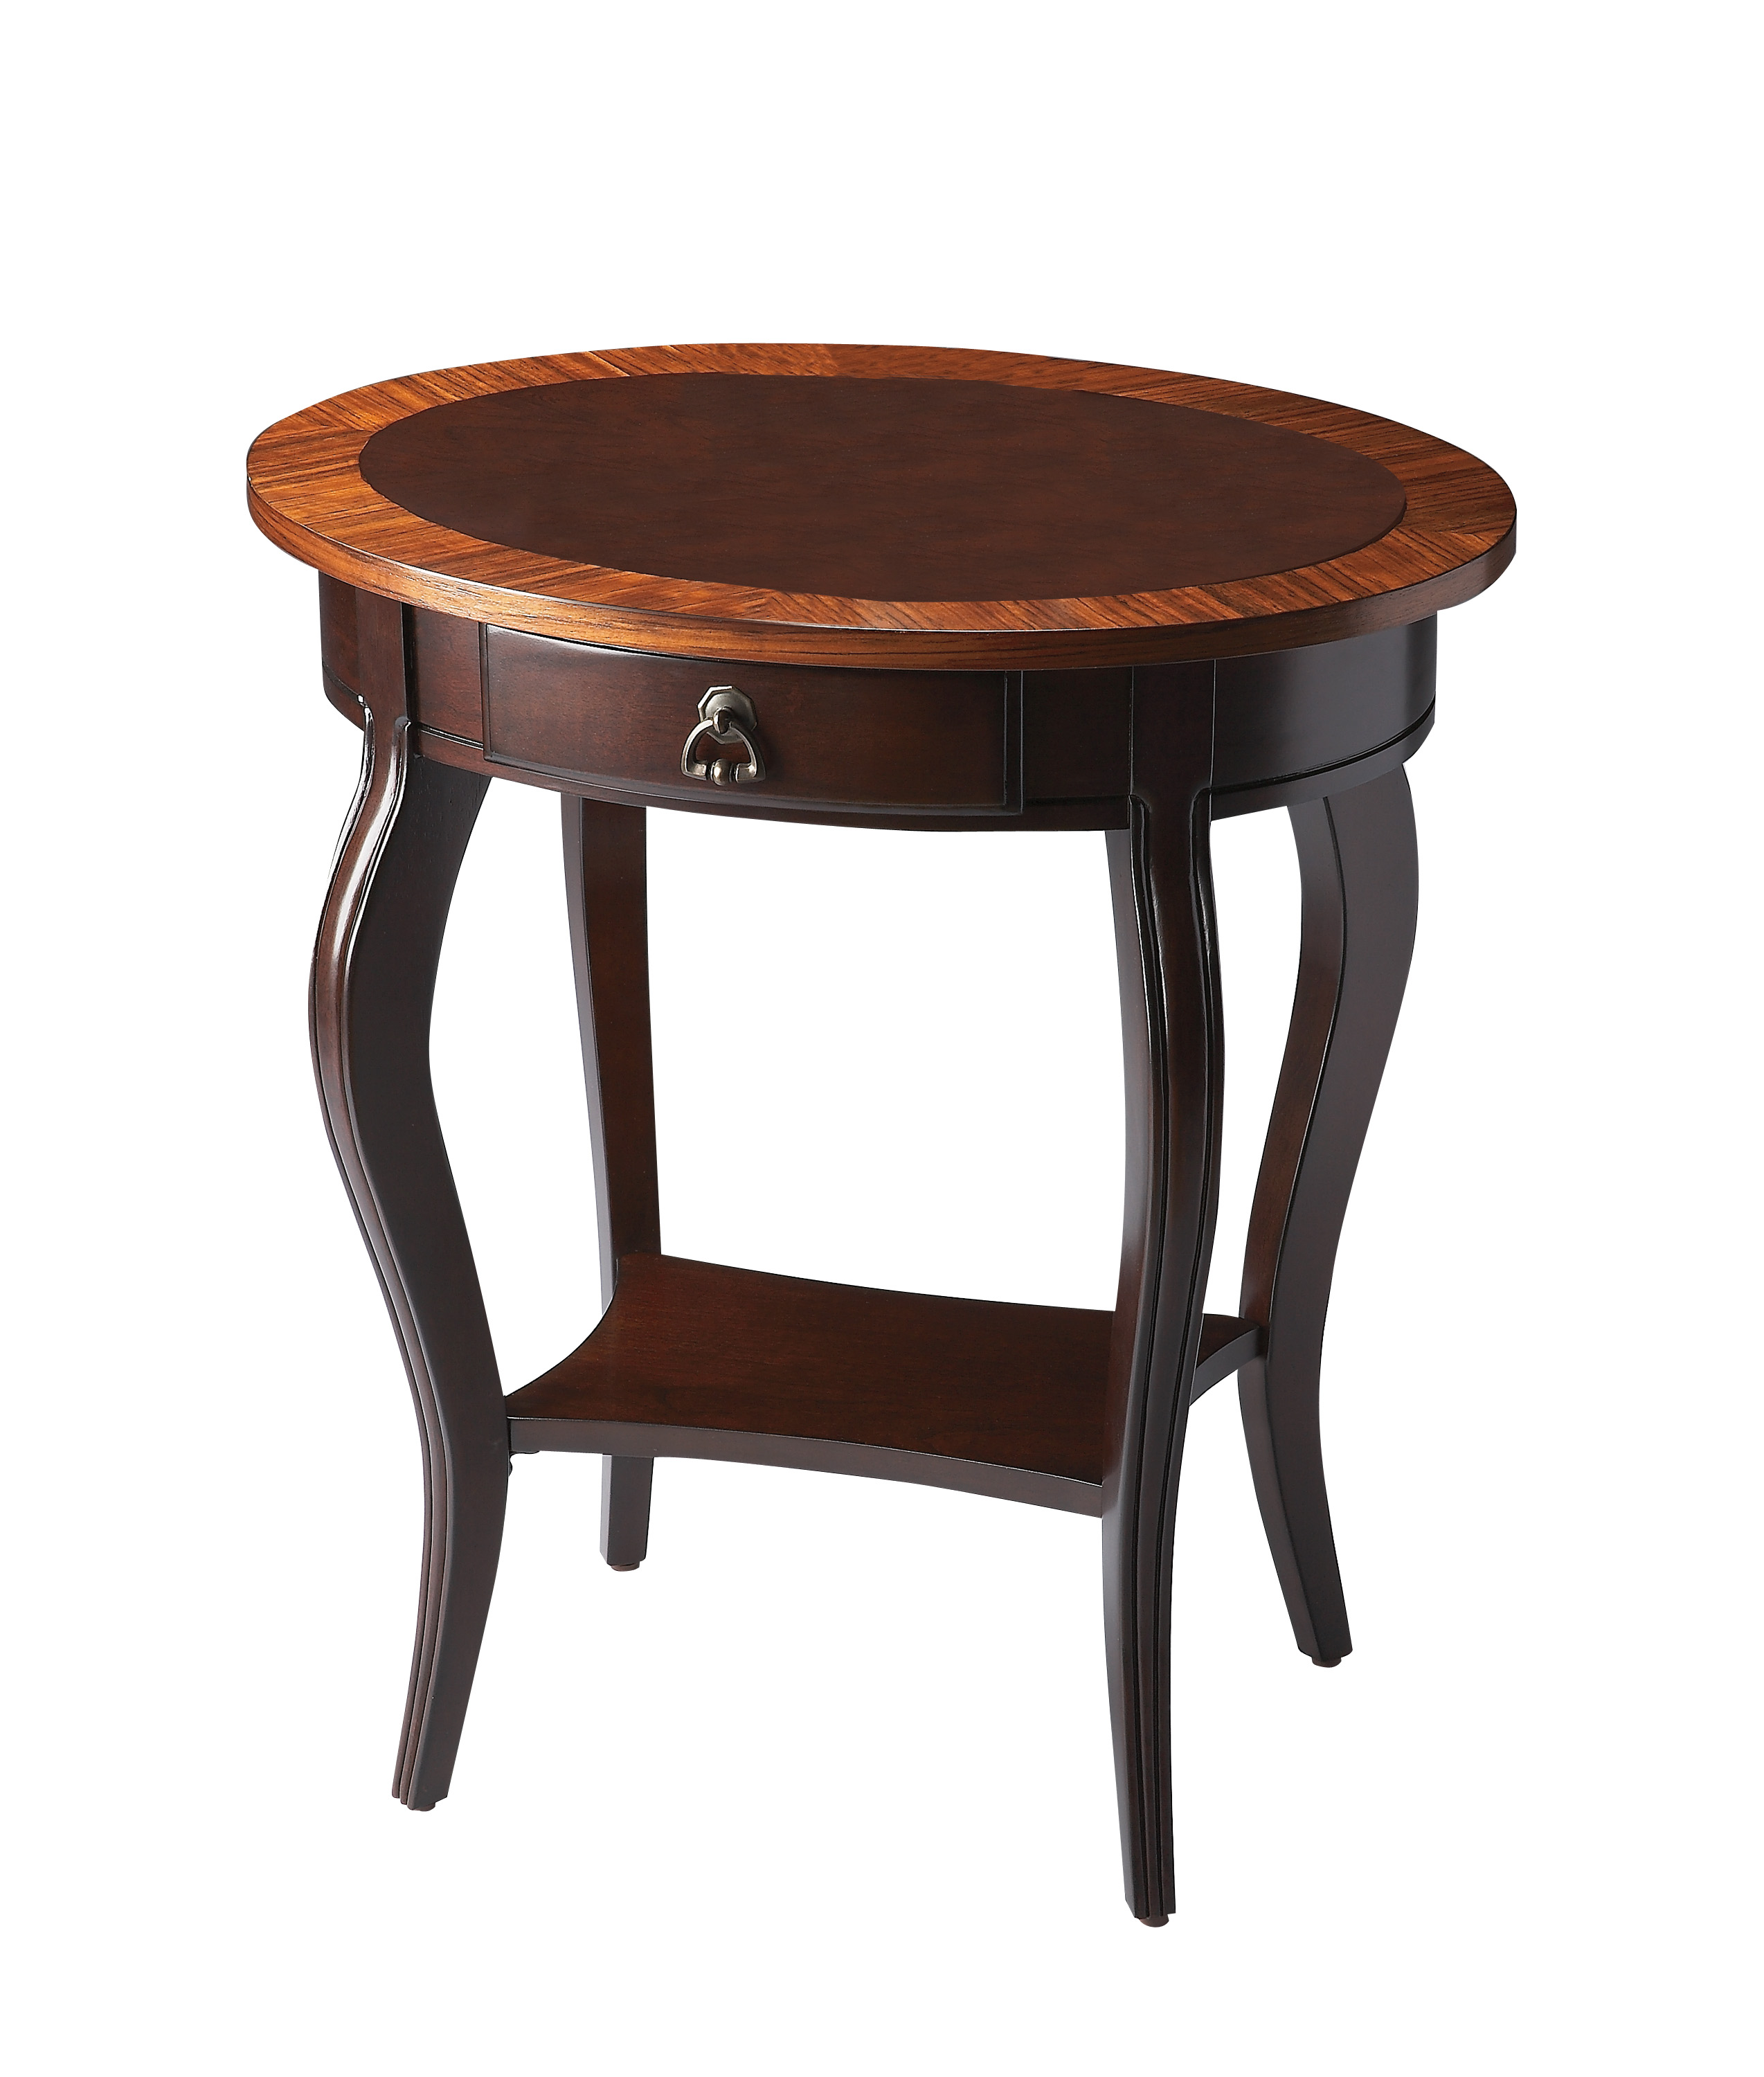 Butler Specialty Company Masterpiece  Oval Accent Table - Item Number: 532211